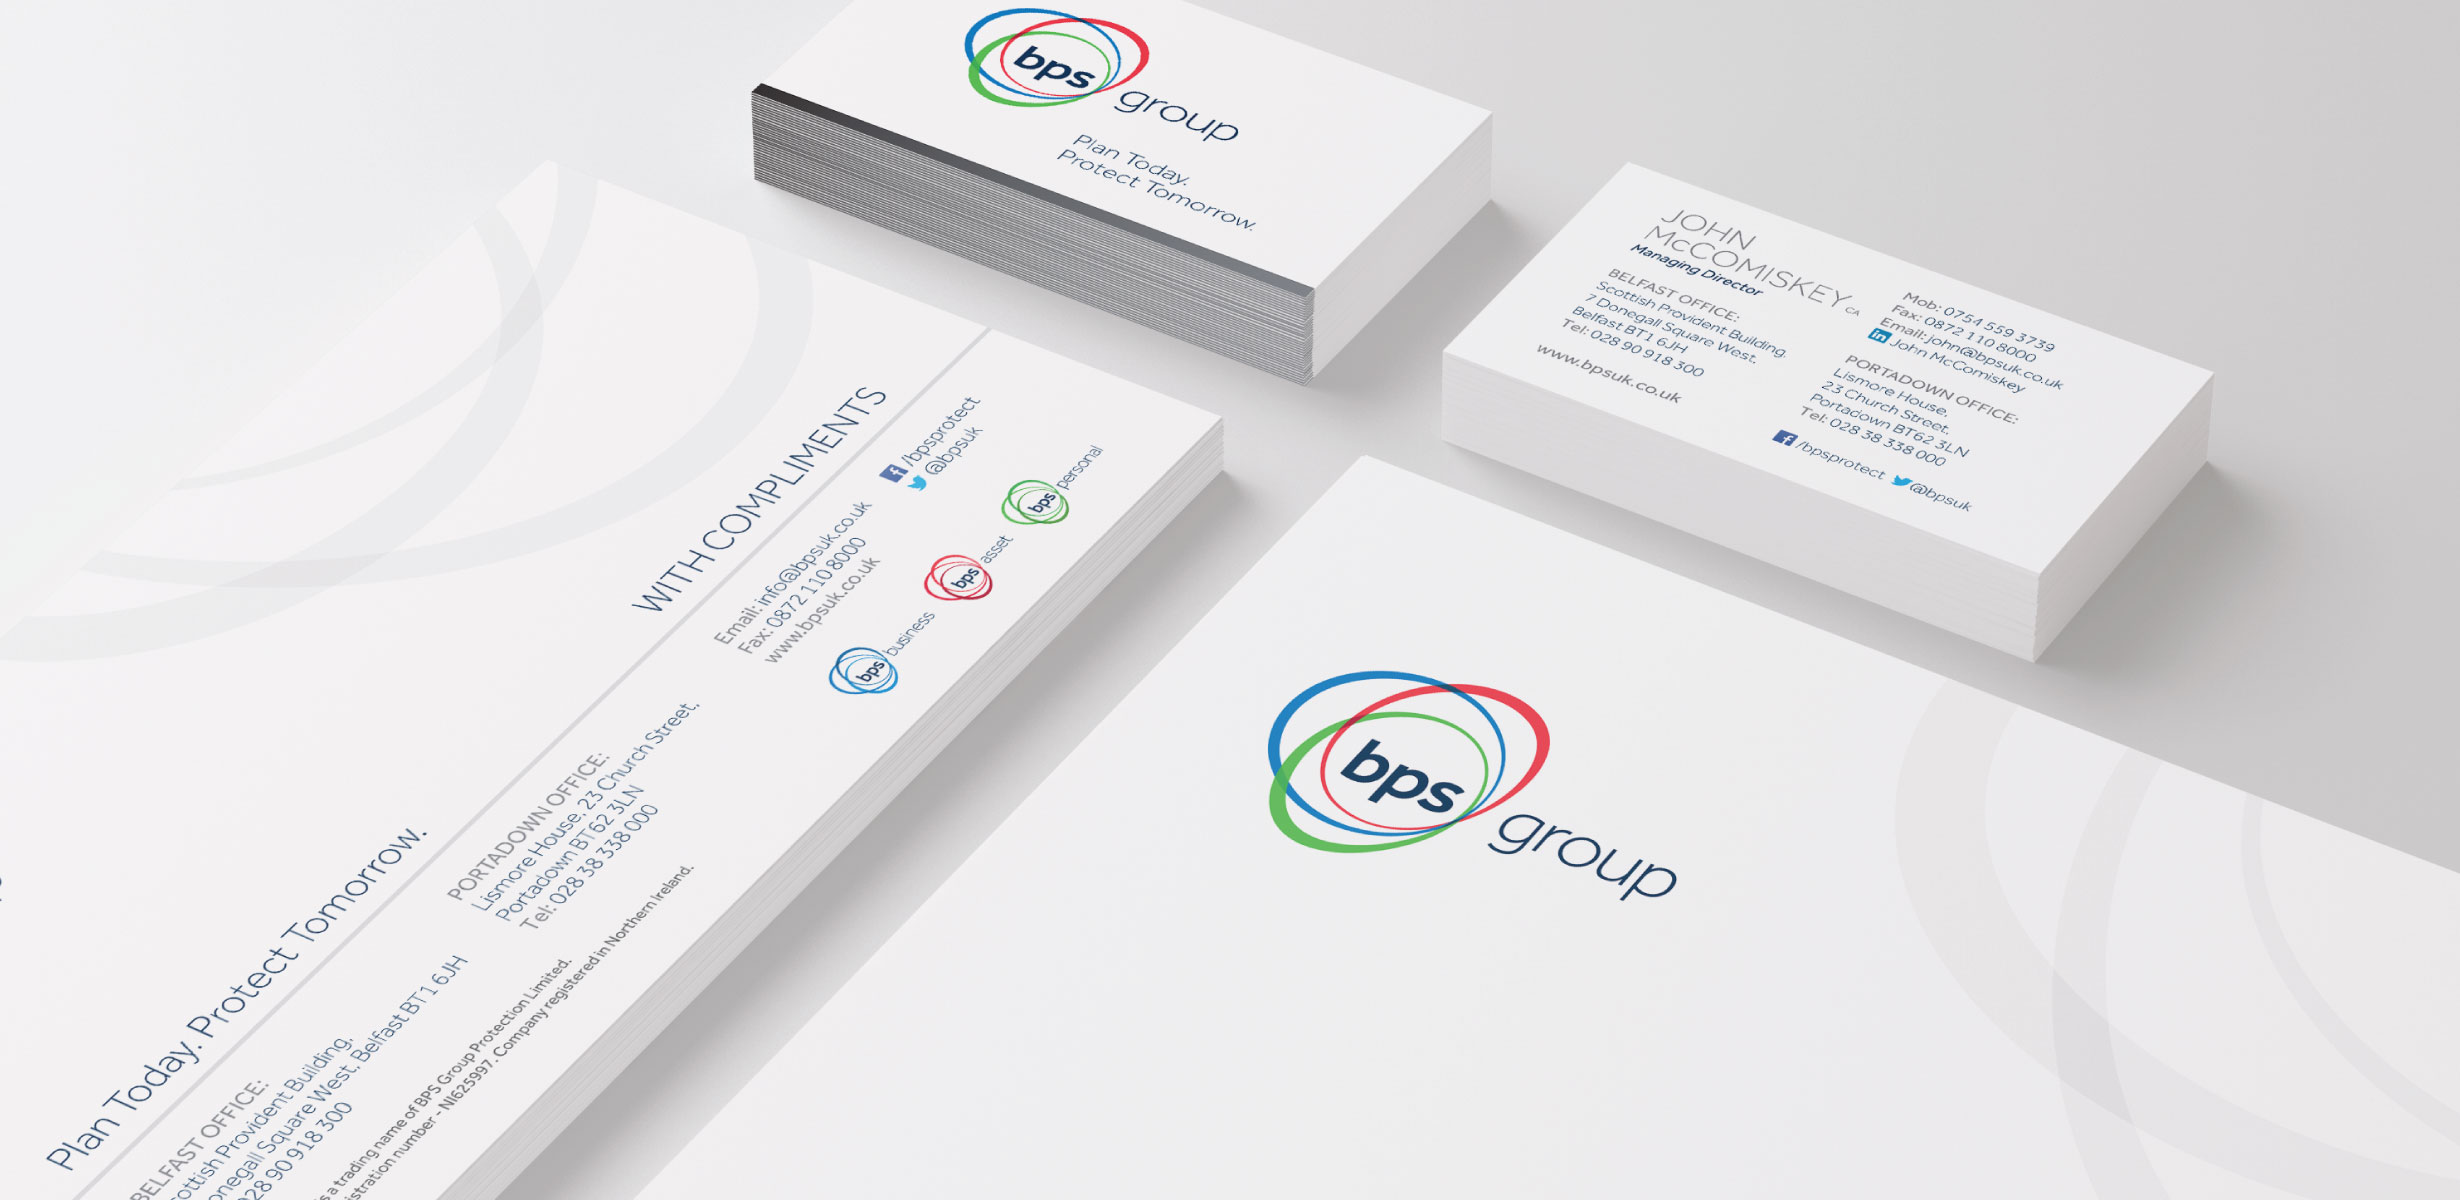 BPS Group Stationary